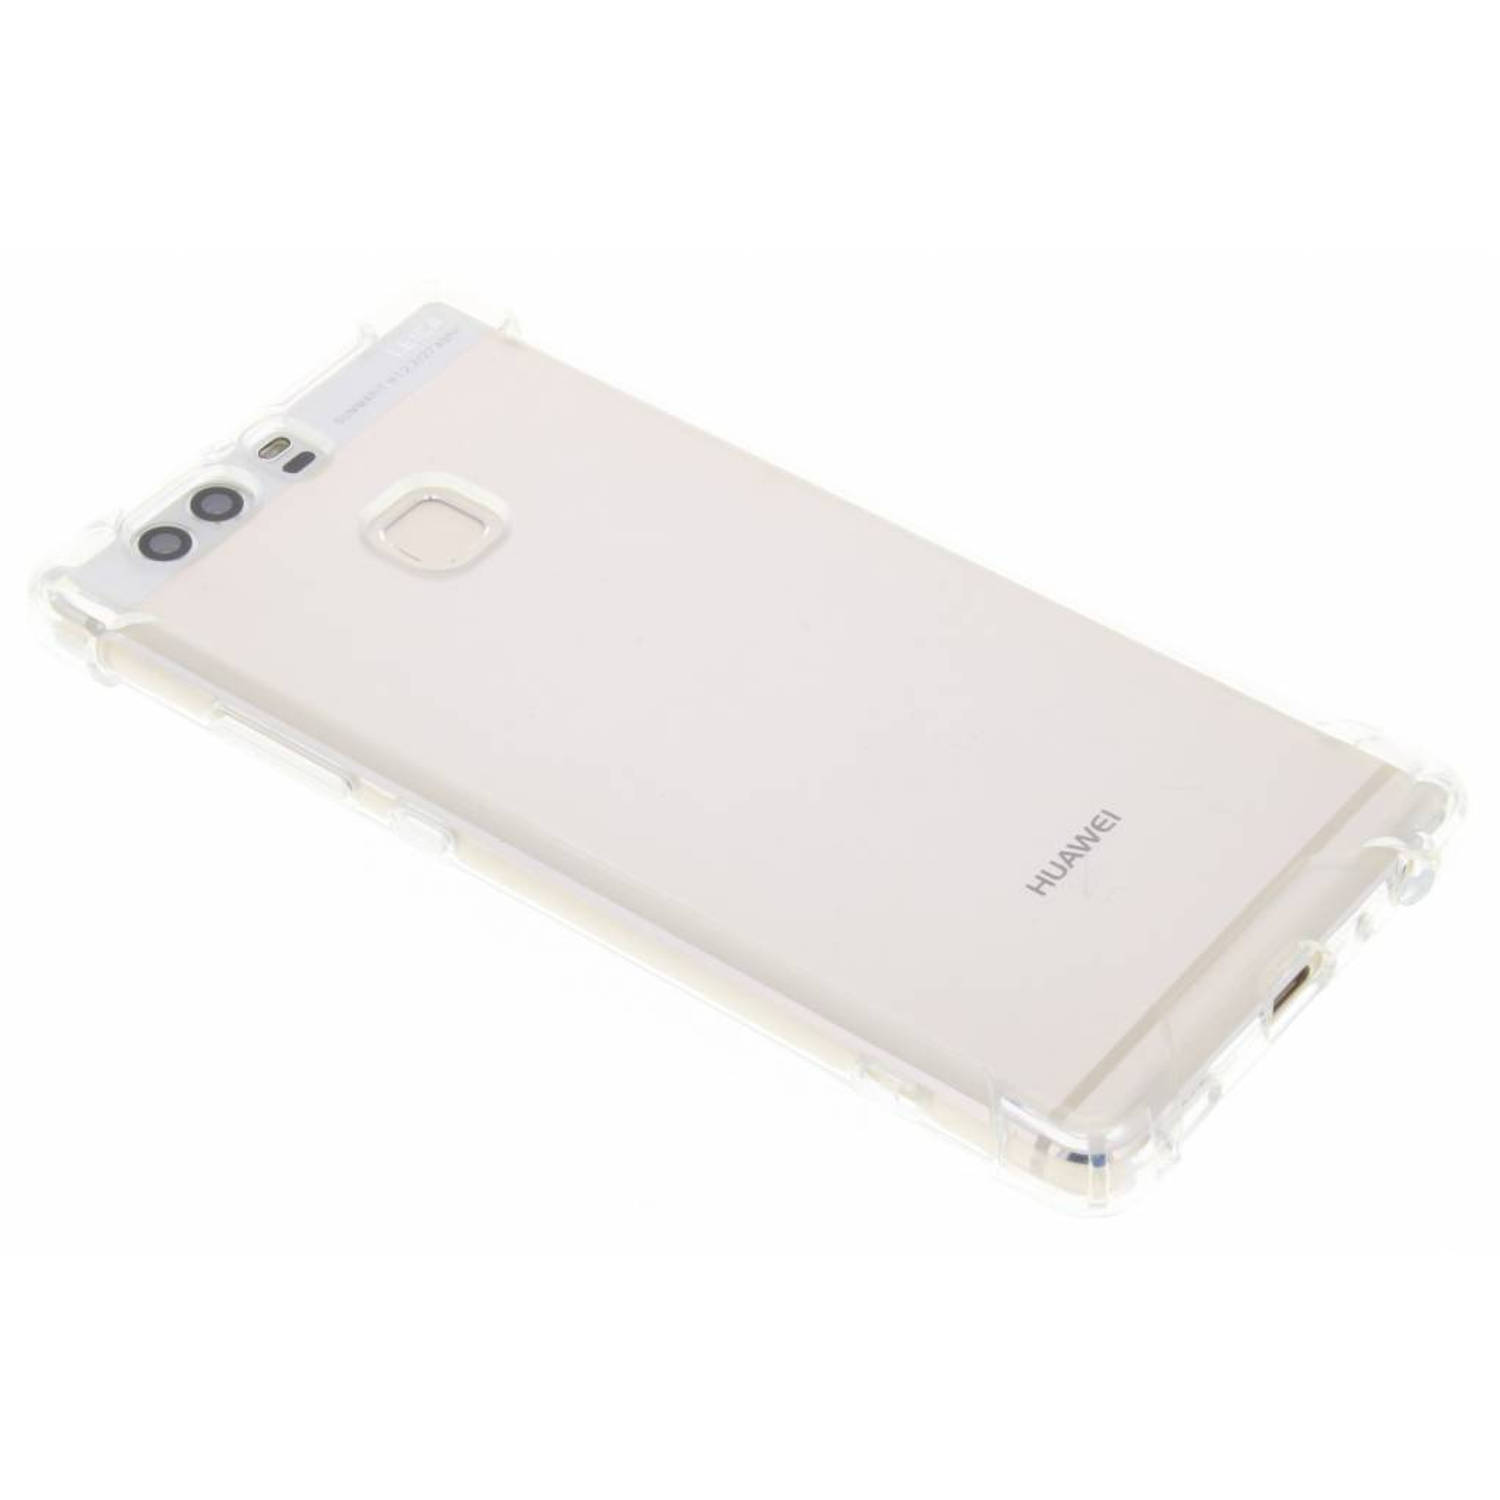 Xtreme tpu cover voor de huawei p9 - transparant